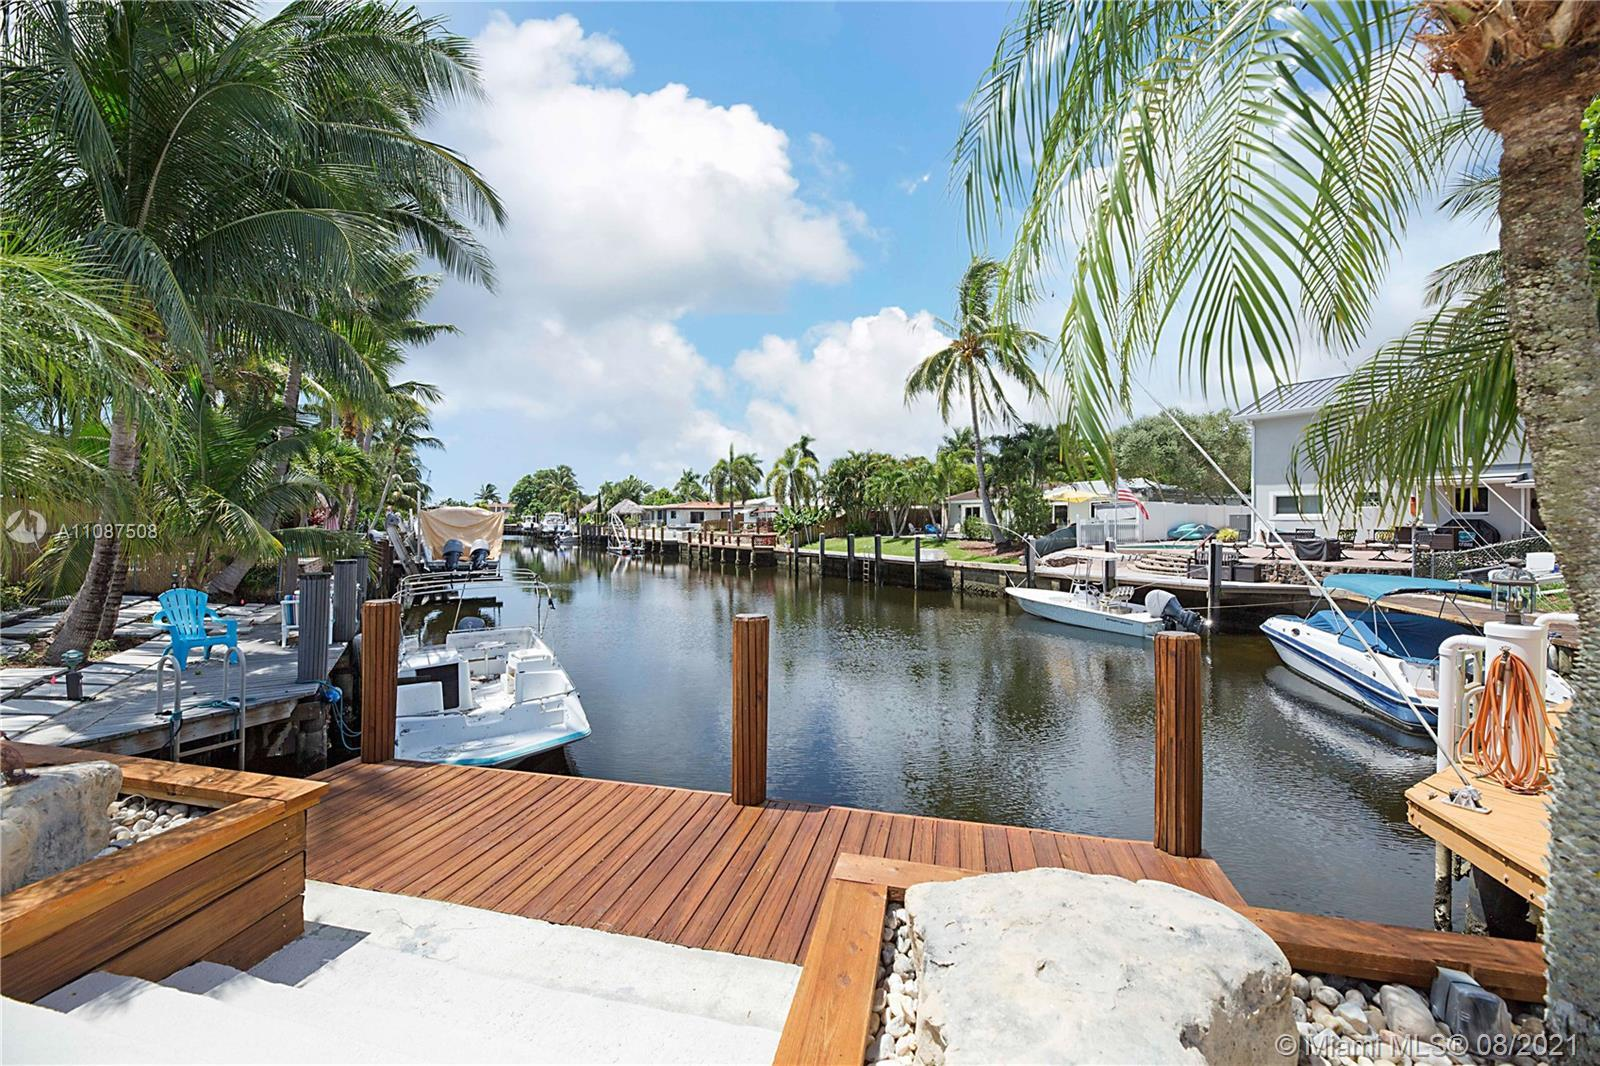 If you have been looking for a waterfront paradise w/ ocean access this may be the perfect home for